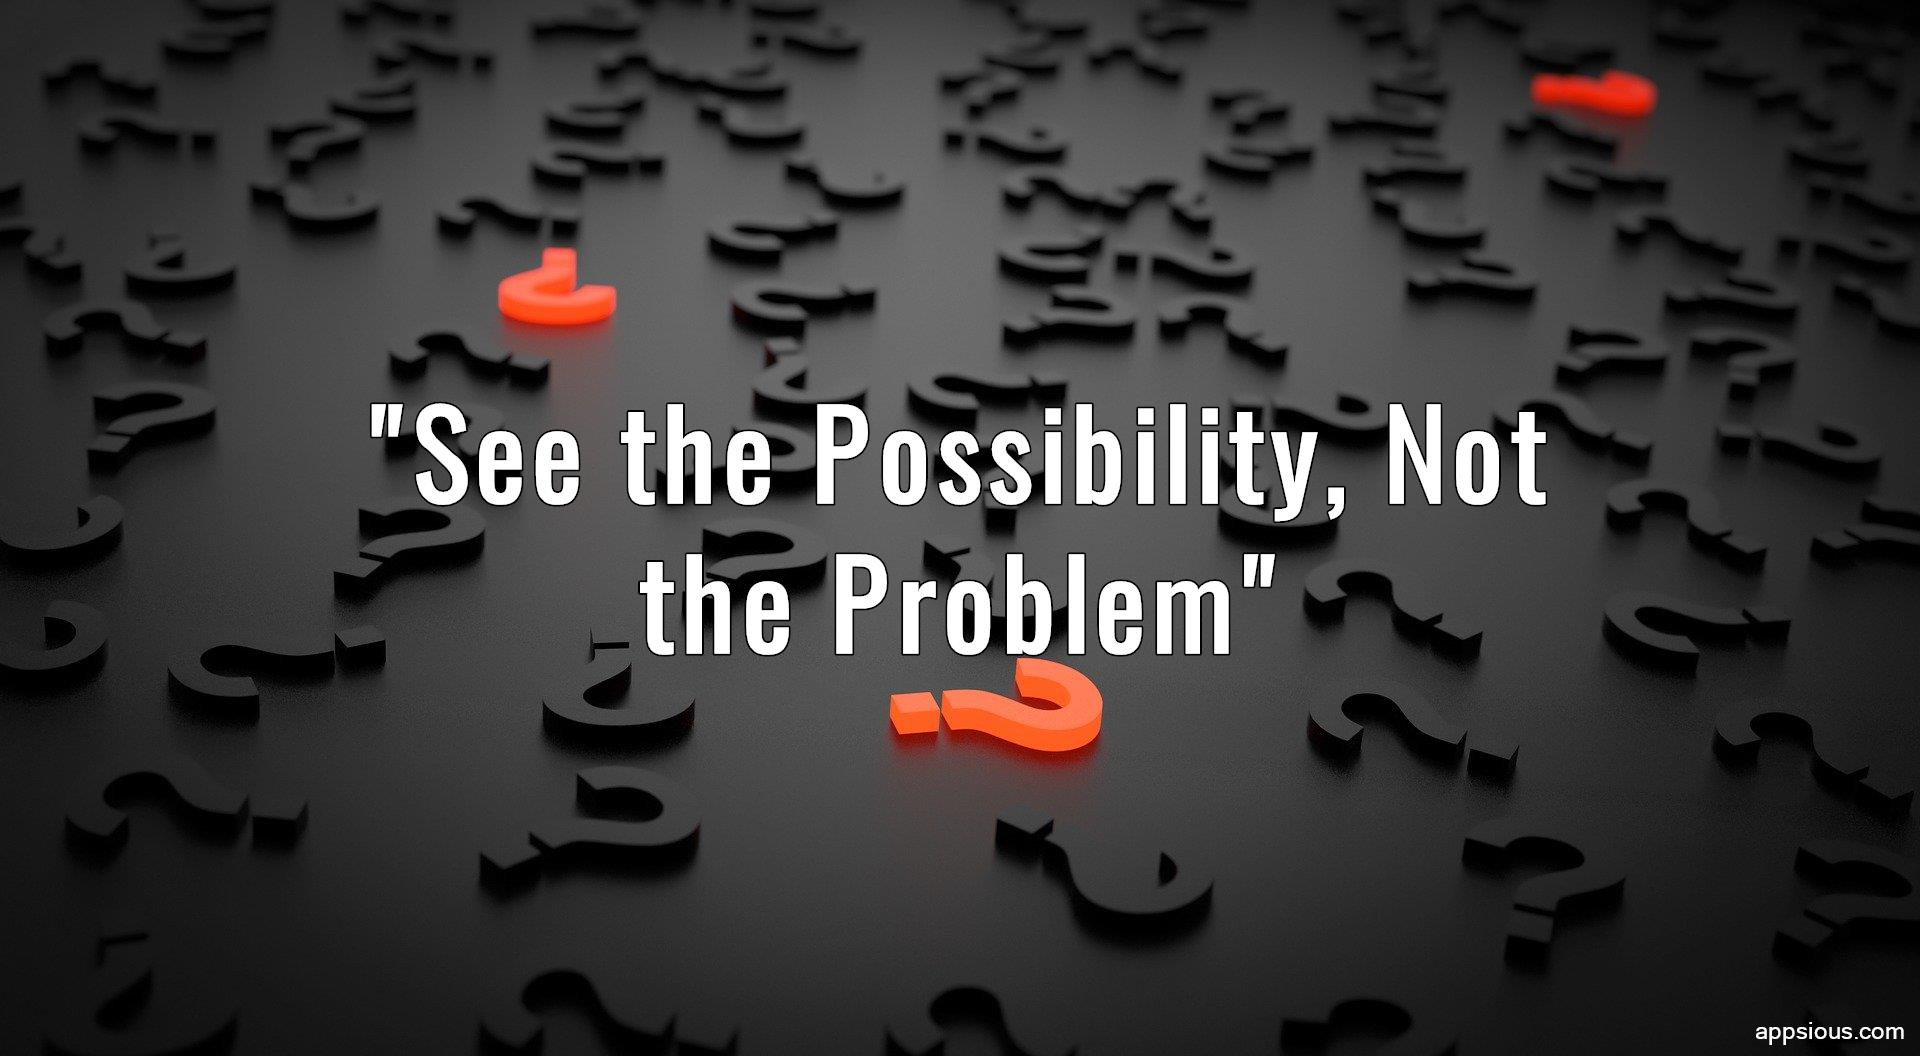 See the Possibility, Not the Problem